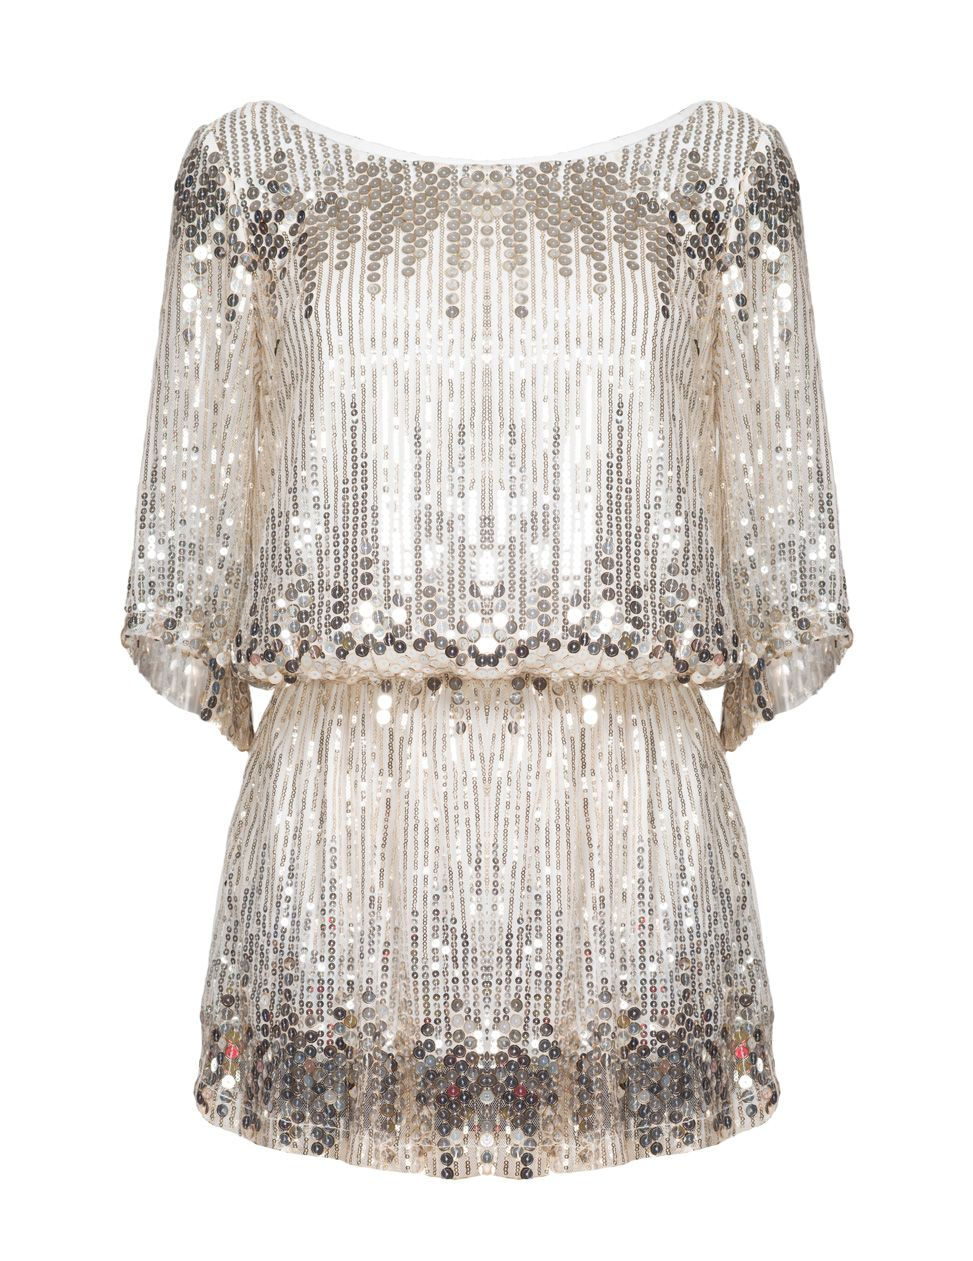 Aftershock Dini Silver Embellished Top in Natural | Lyst